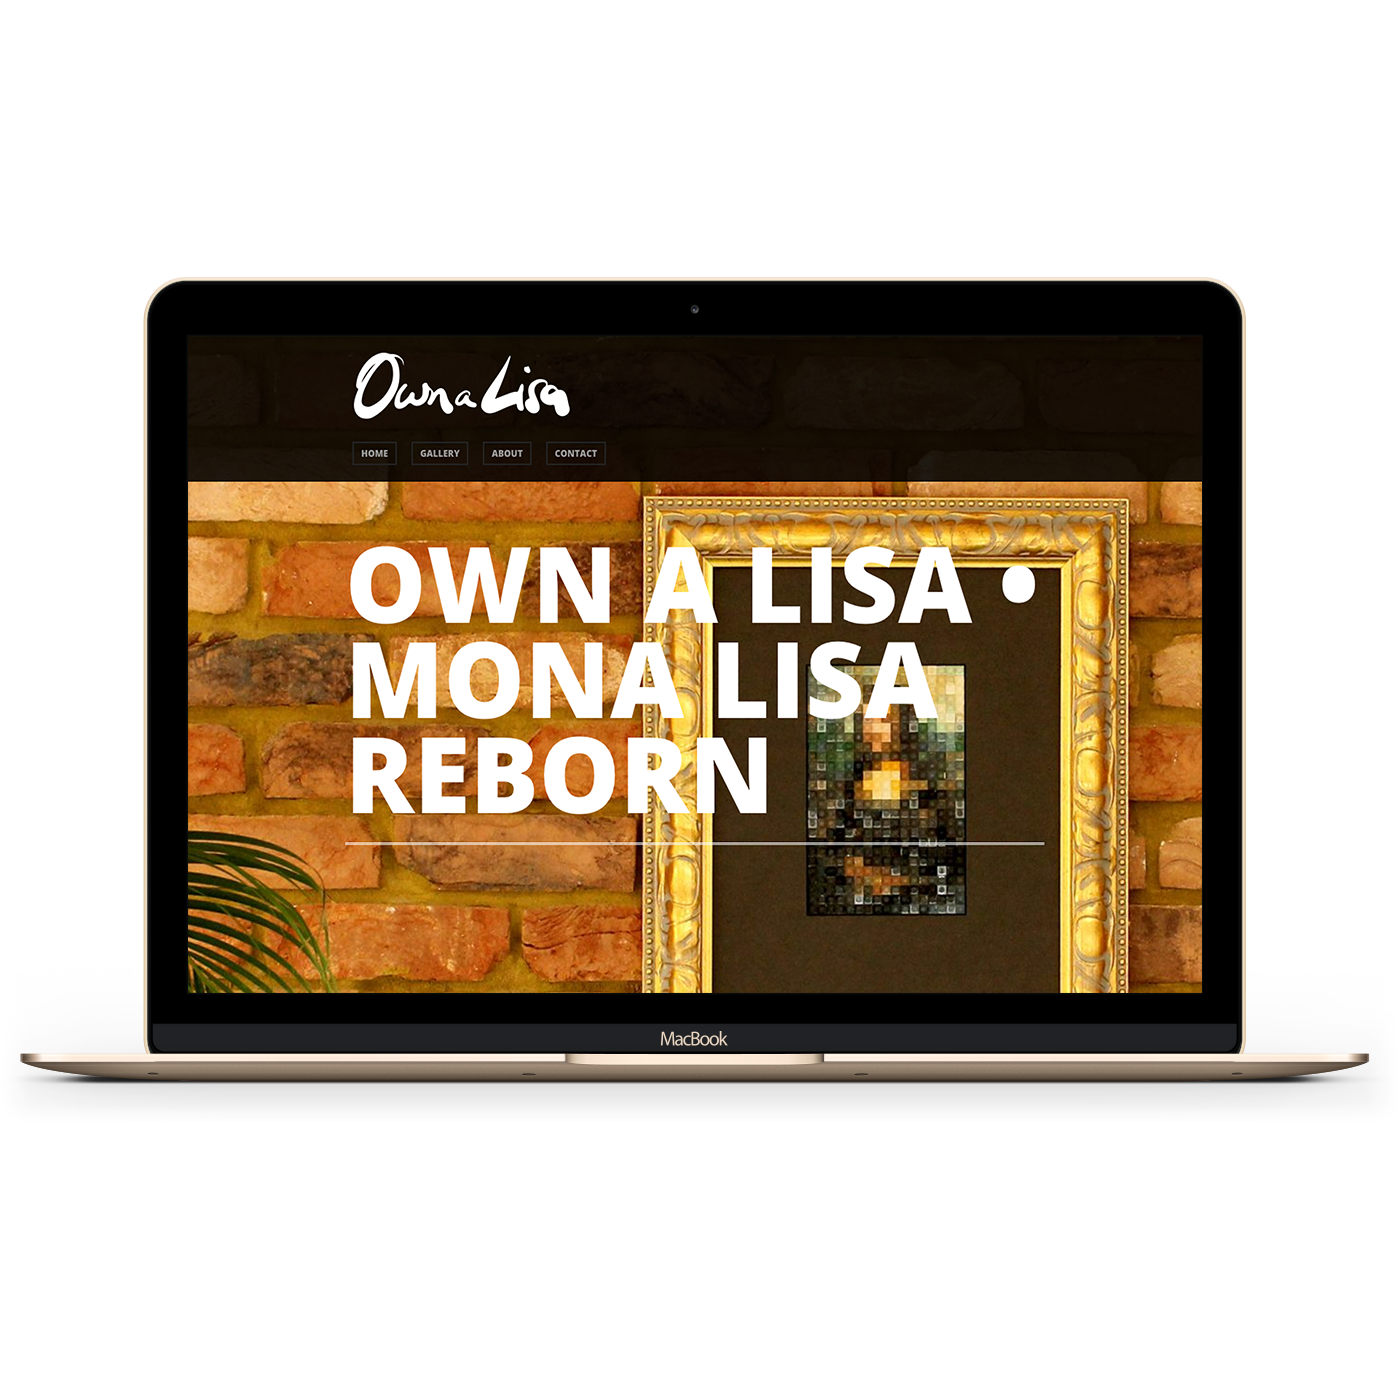 Own A Lisa Website image